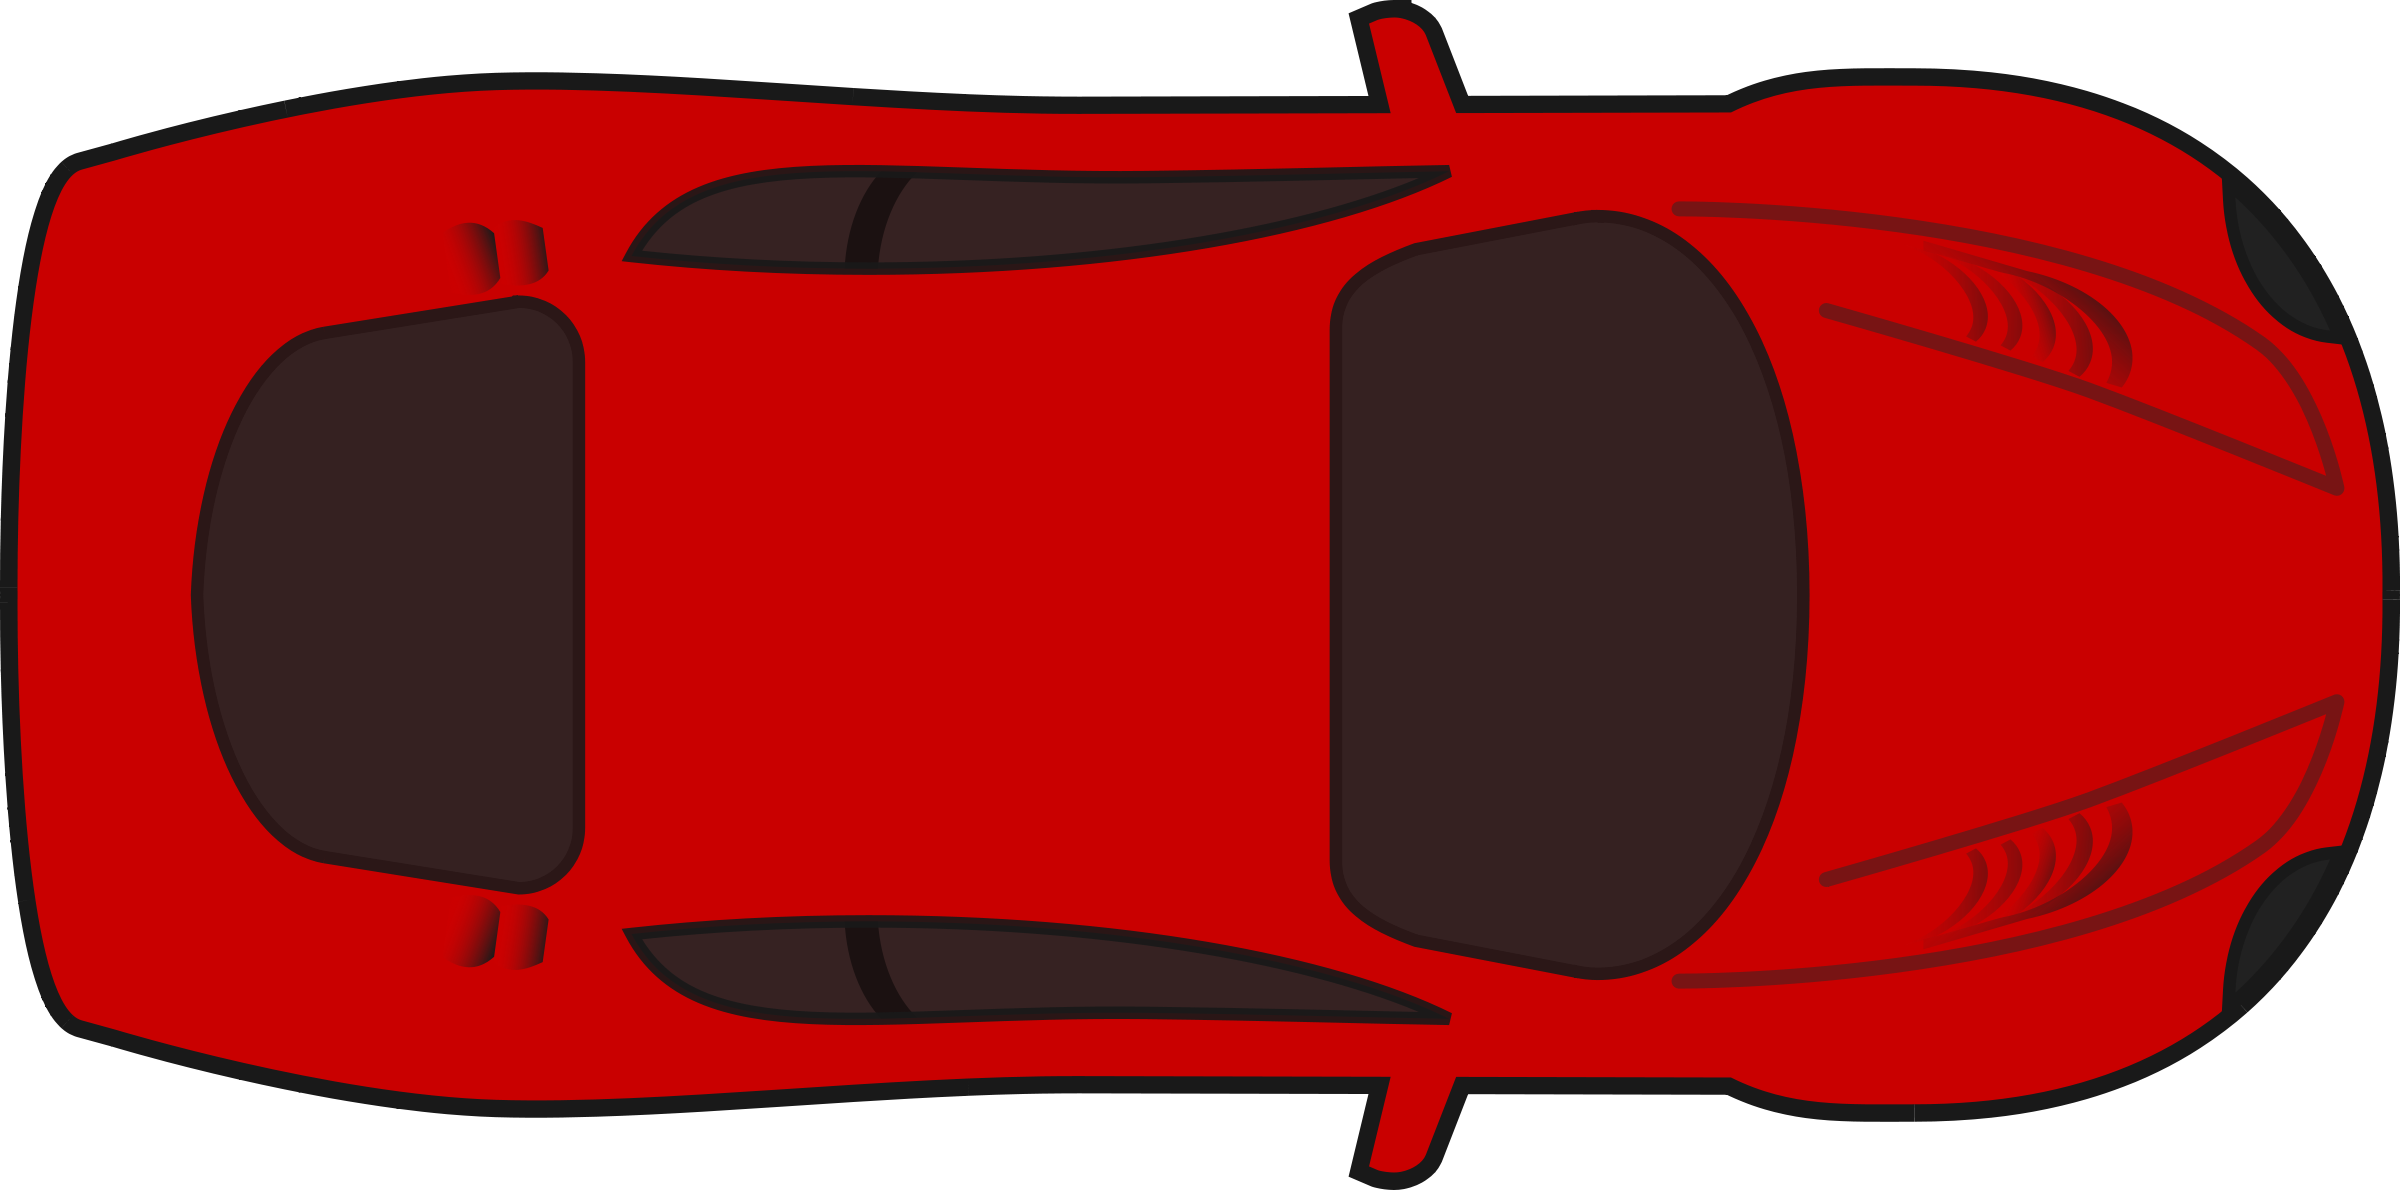 Red racecar transparent background clipart.